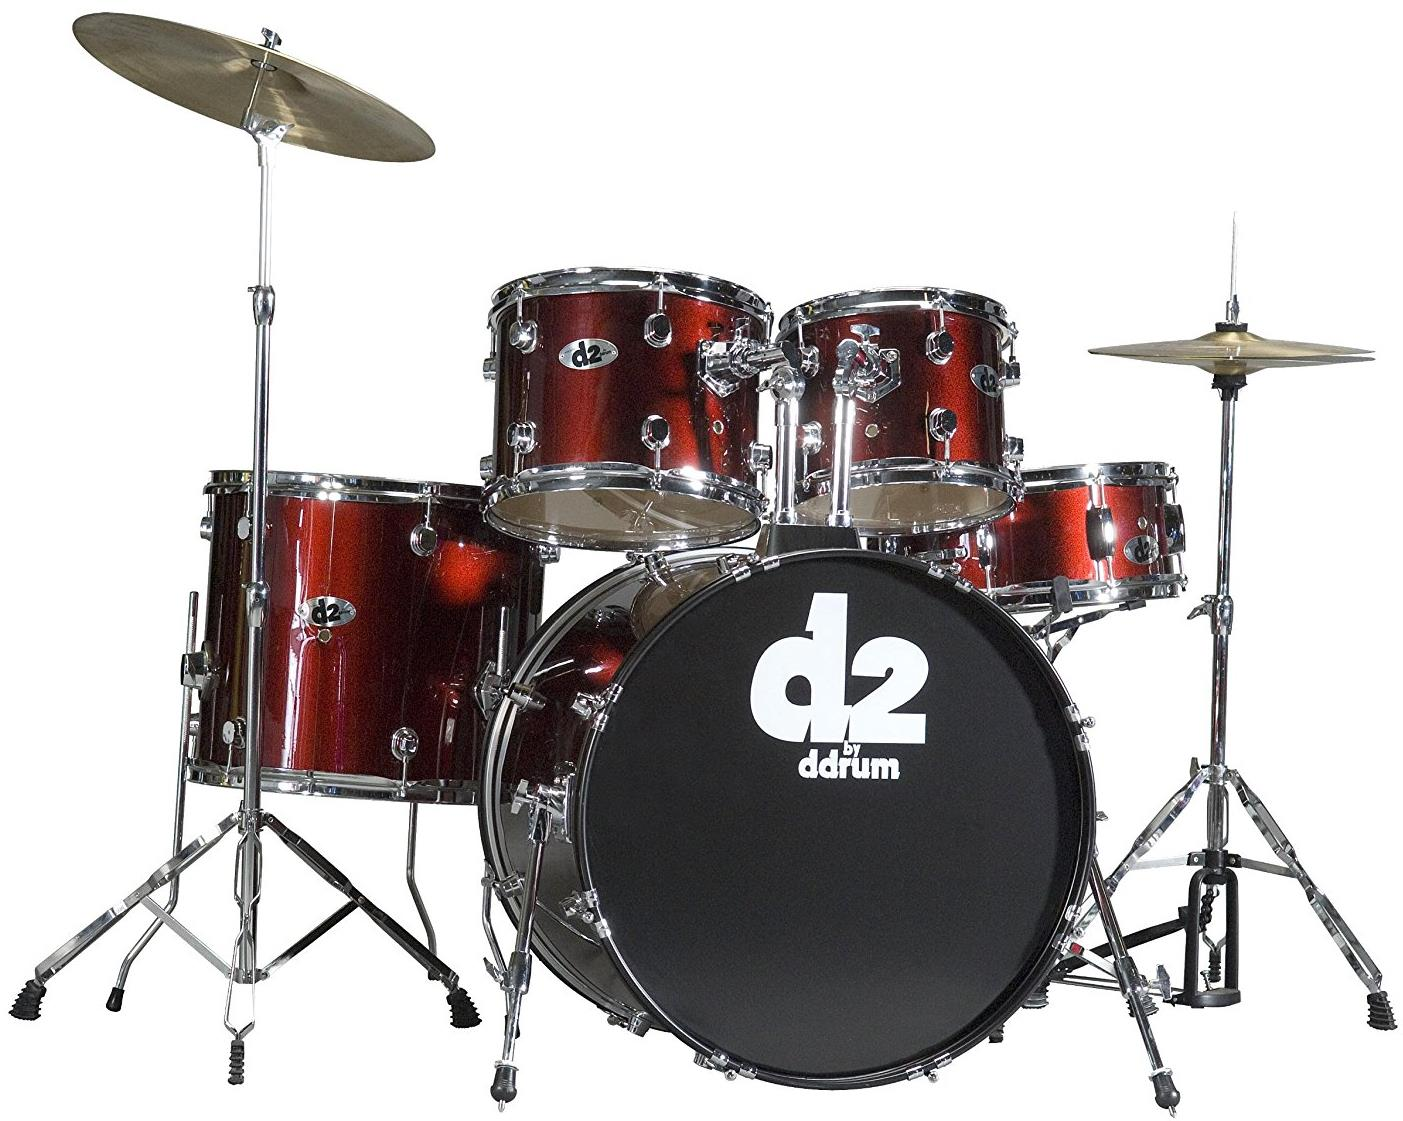 ddrum D2 5-Piece Acoustic Drum Set - Bllood Red